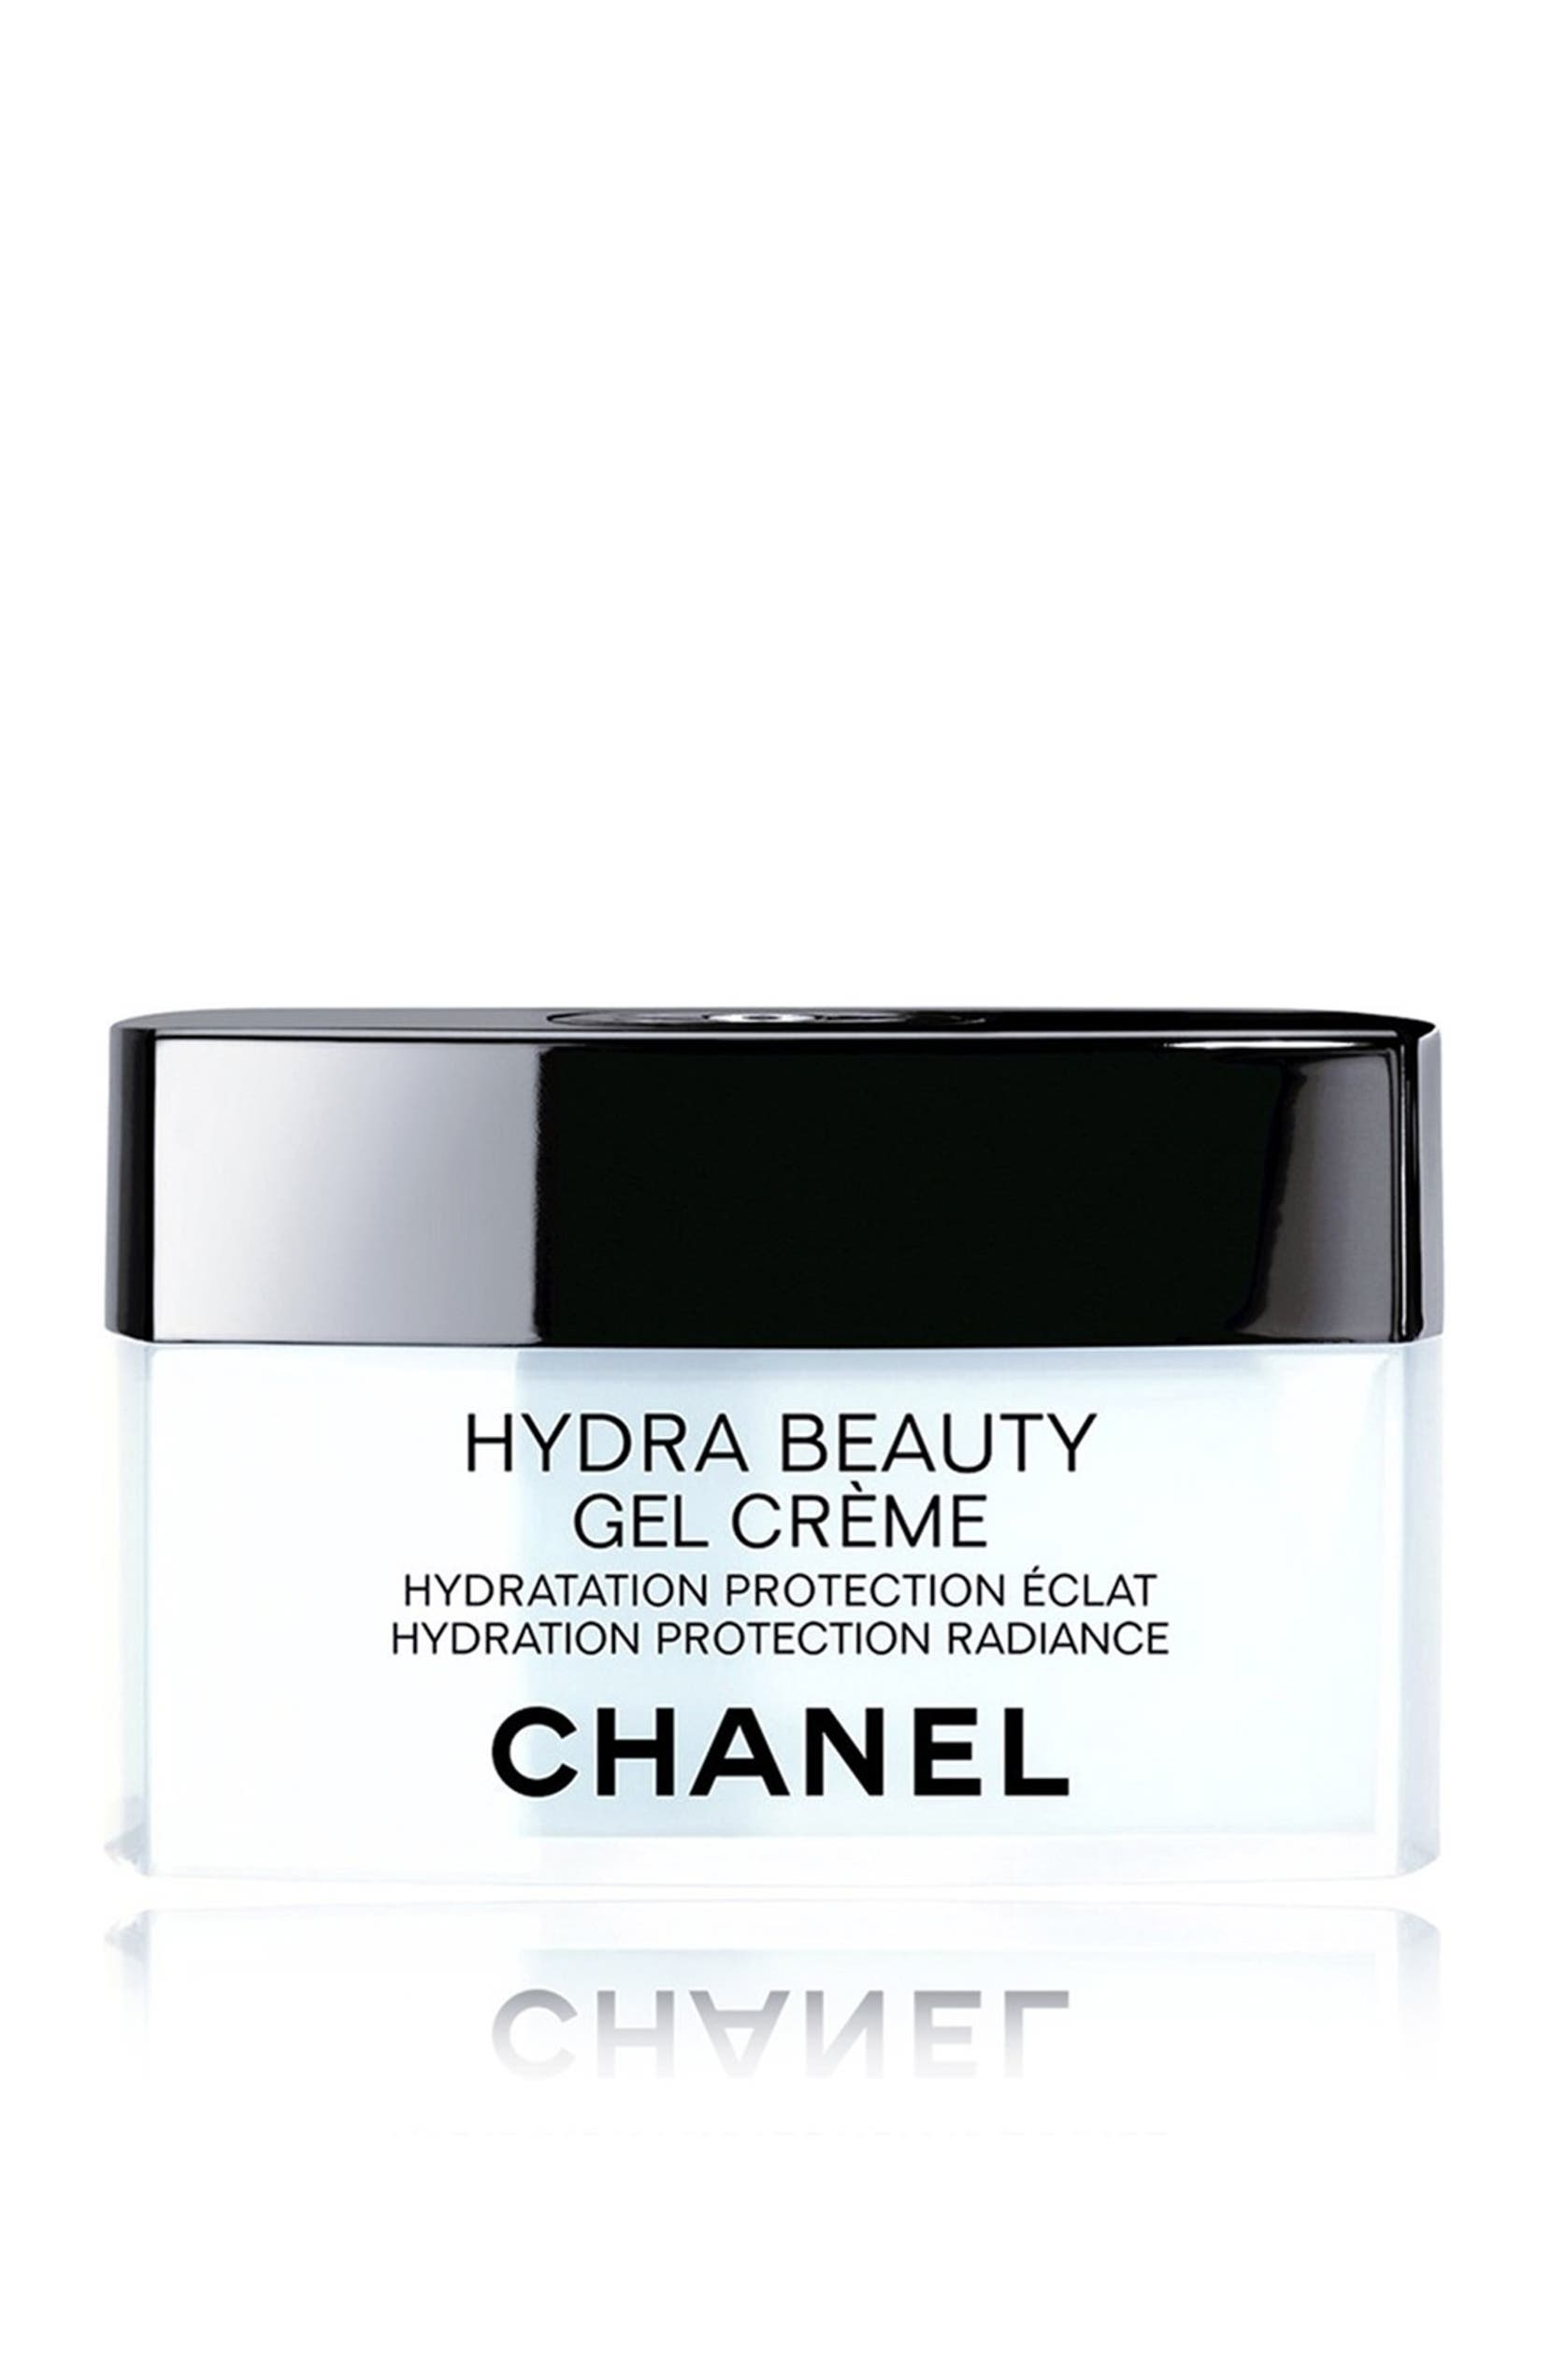 CHANEL HYDRA BEAUTY GEL CRÈME Hydration Protection Radiance  fd78608ebe